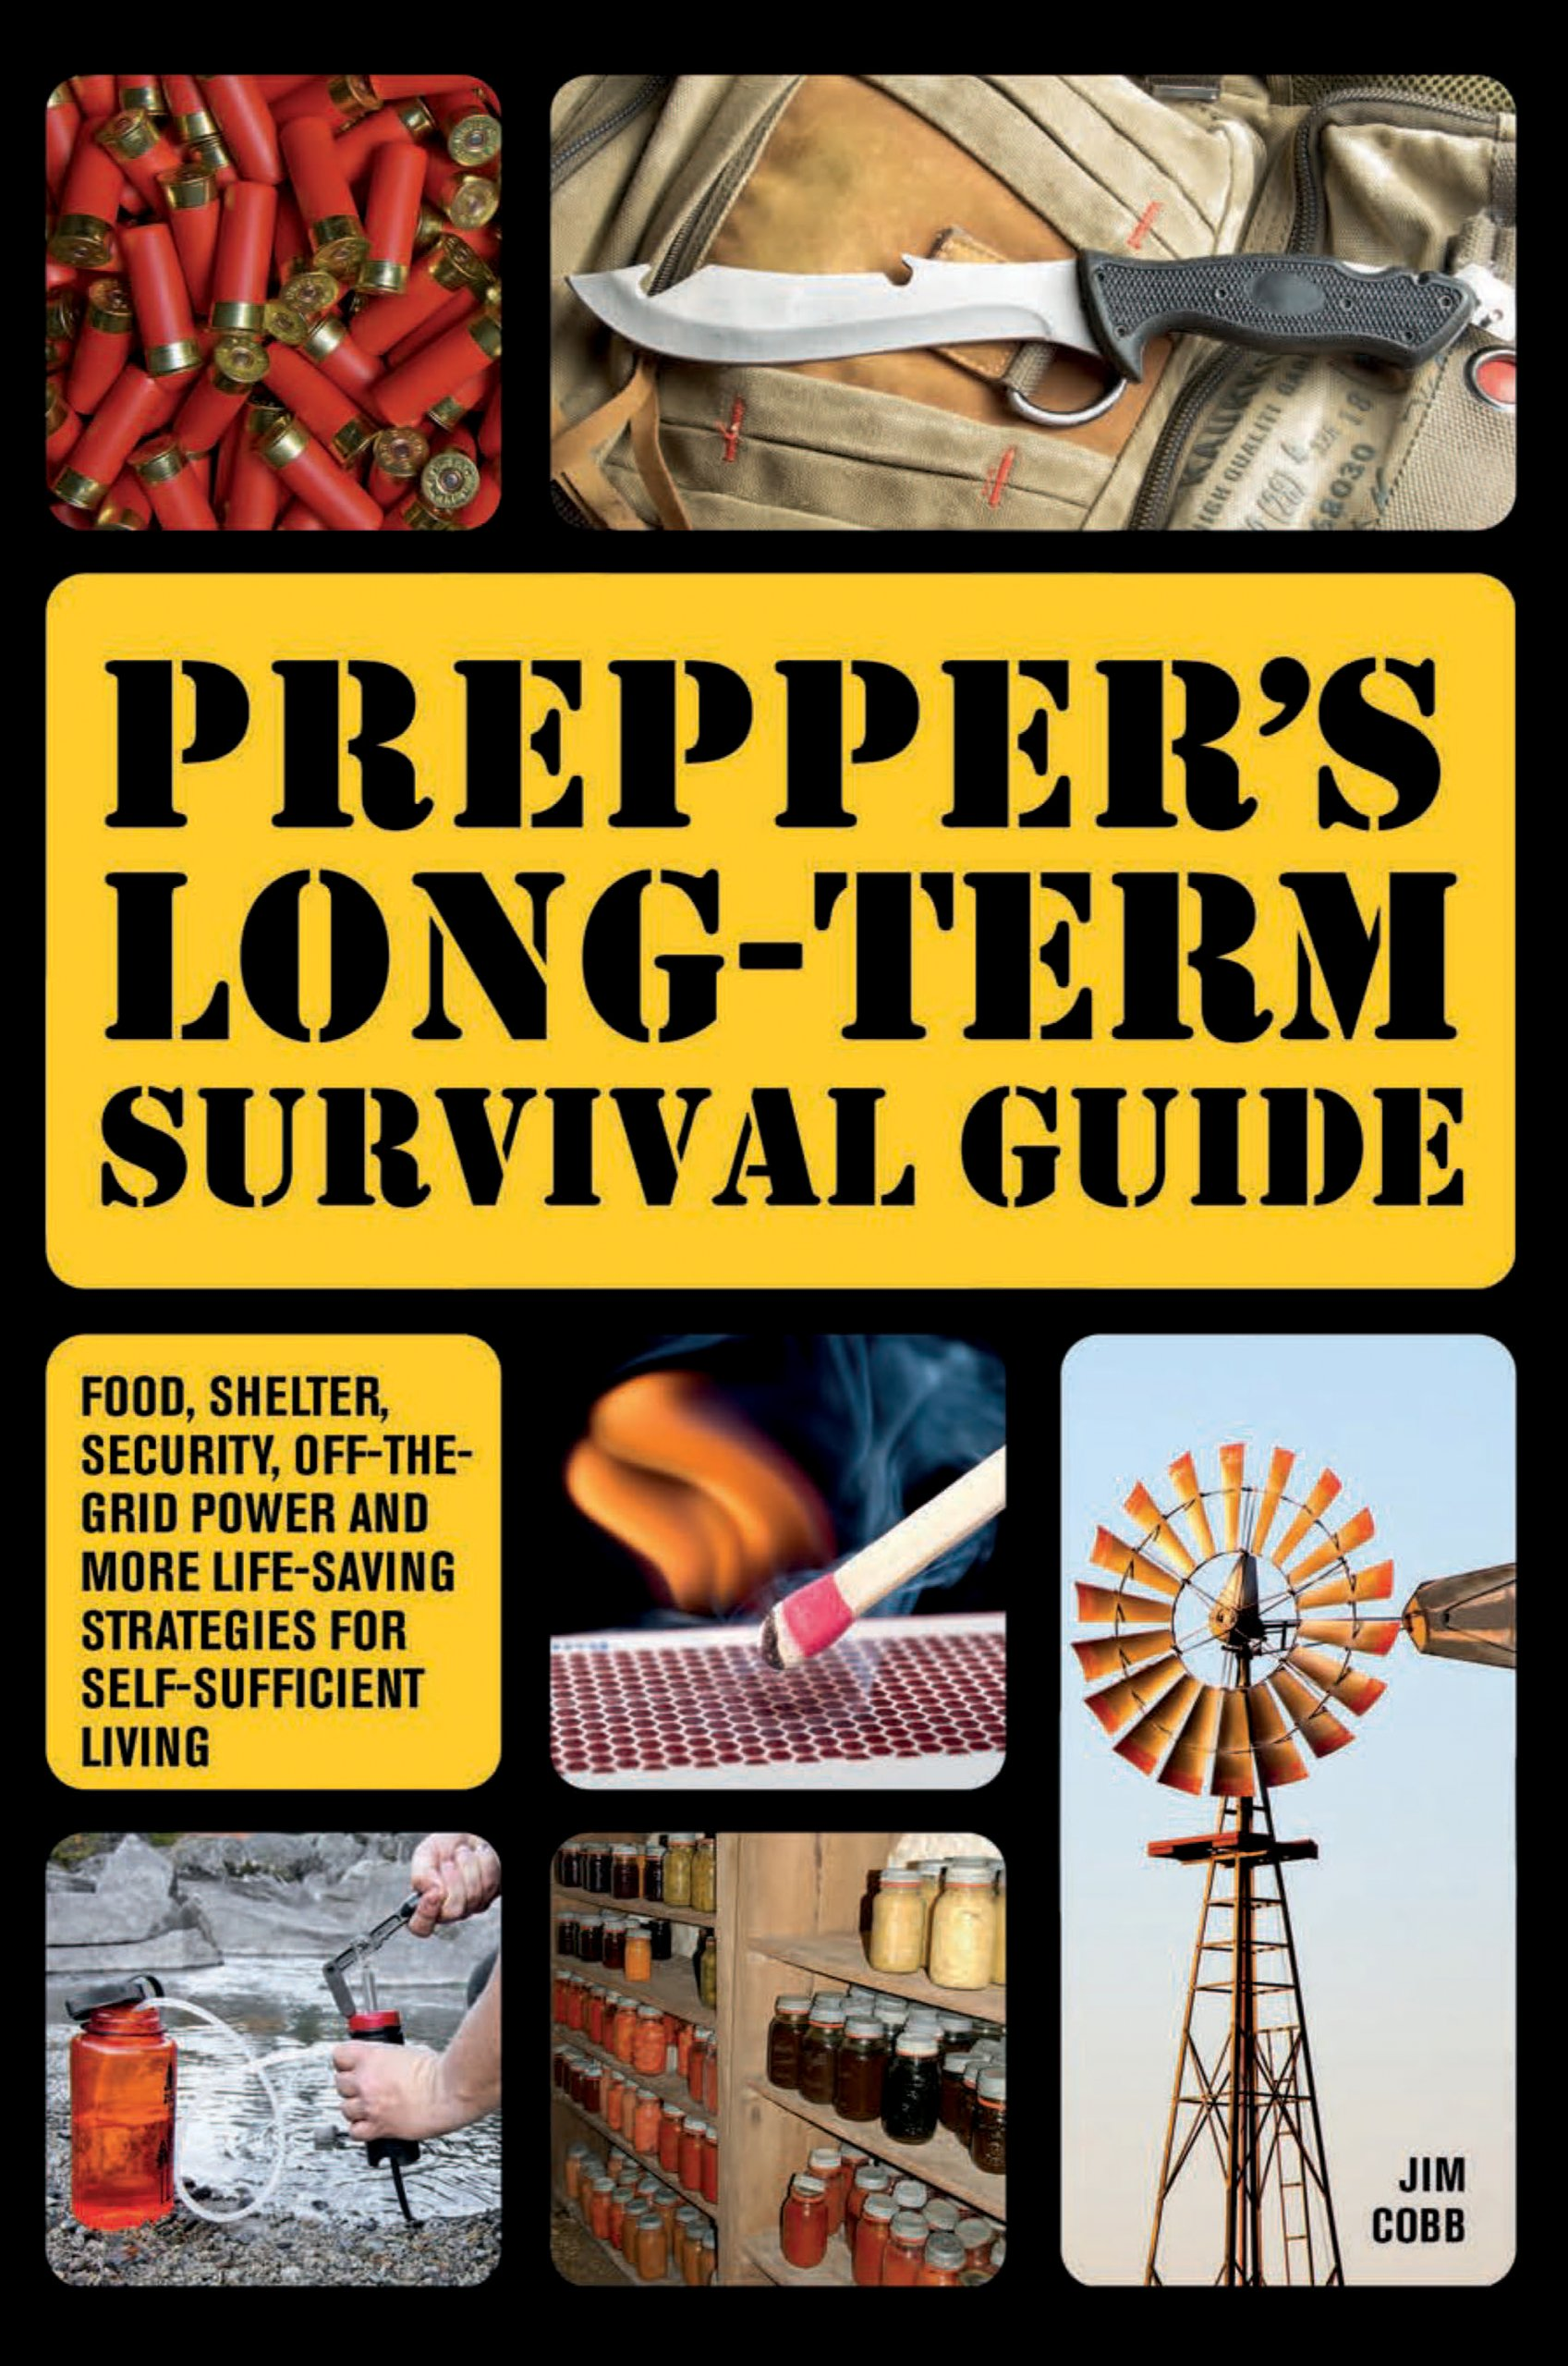 Prepper's Long-Term Survival Guide: Food, Shelter, Security, Off-the-Grid Power and More Life-Saving Strategies for Self-Sufficient Living by Jim Cobb